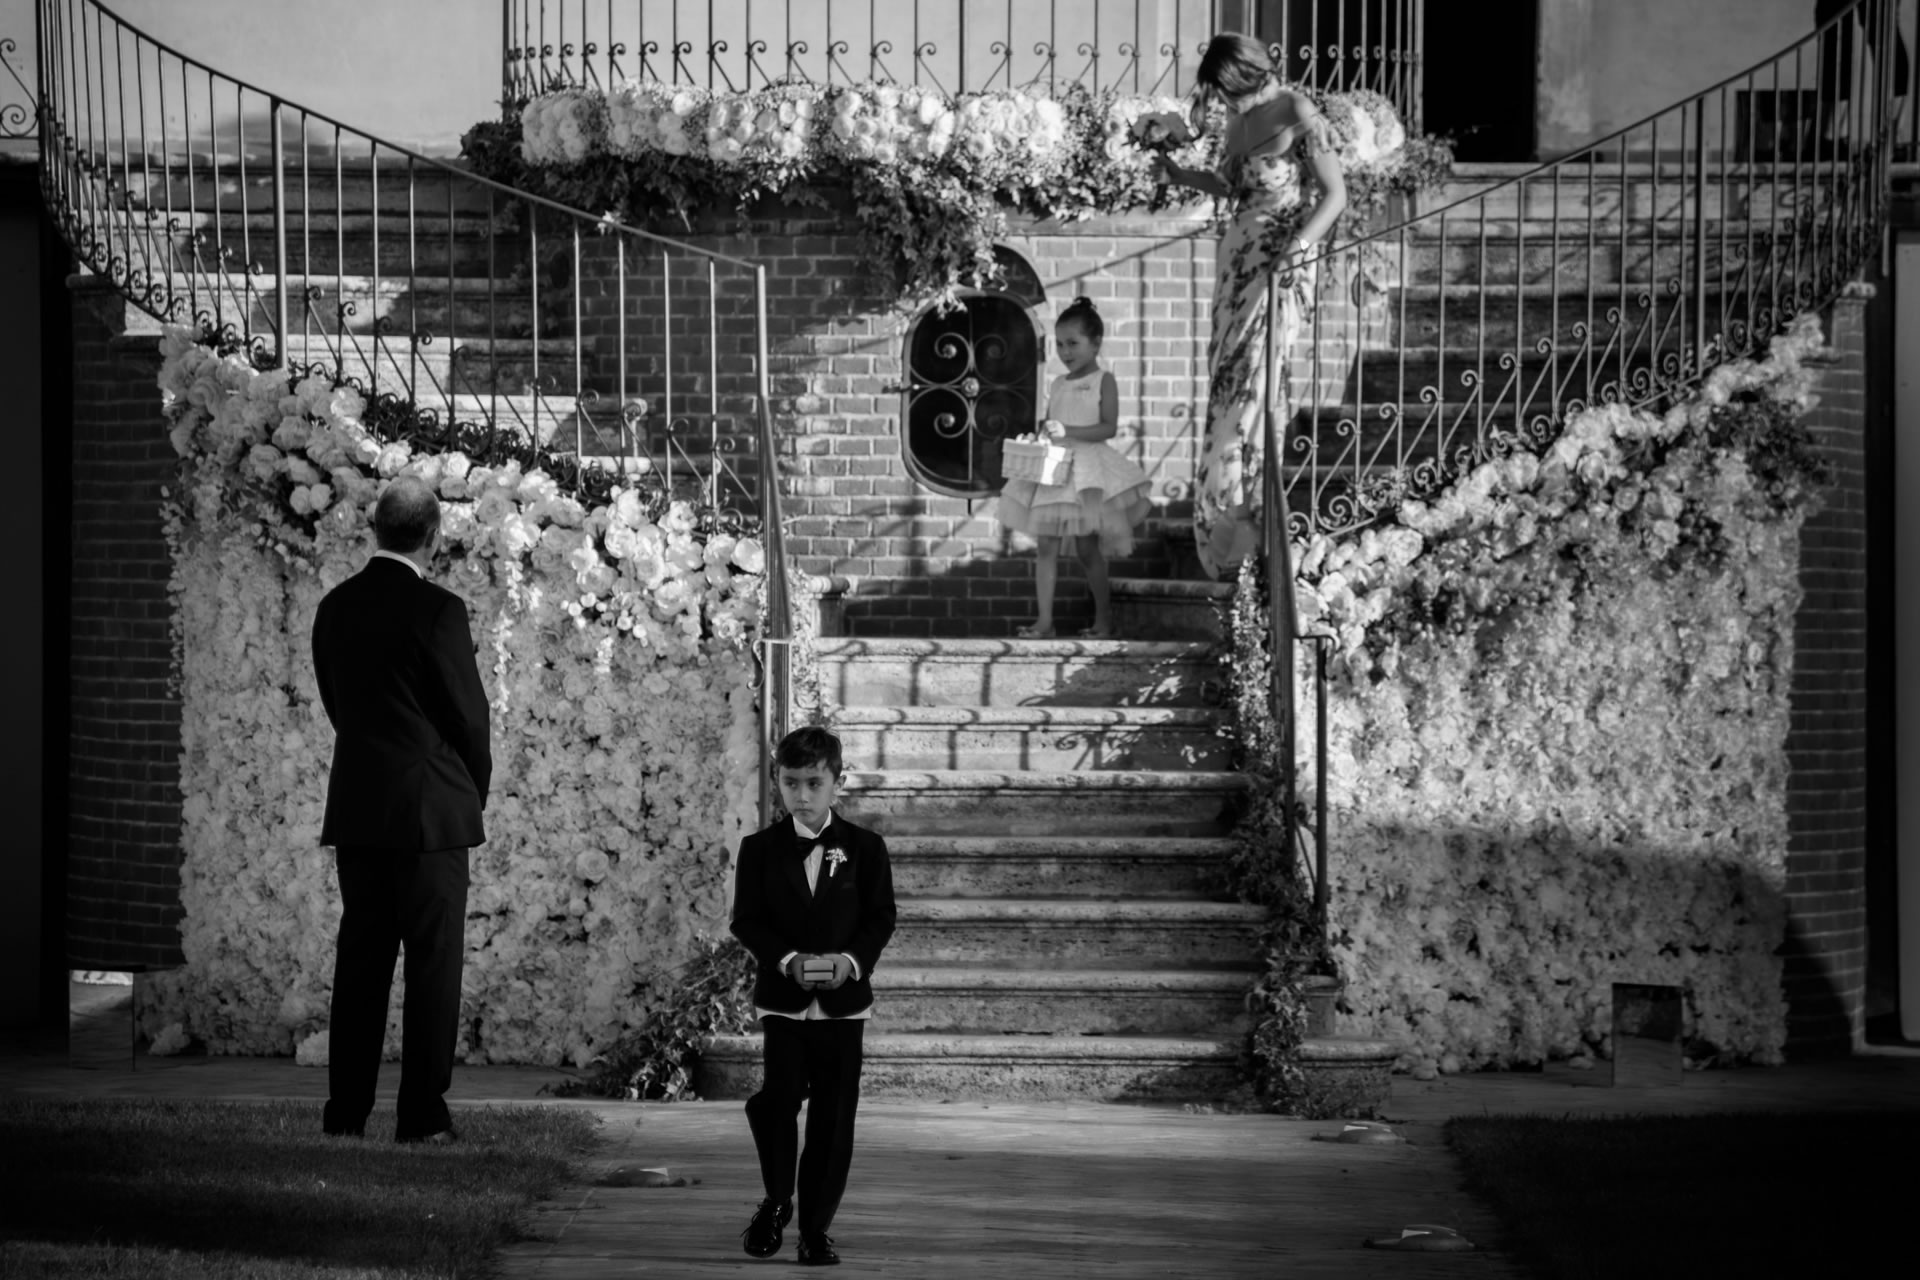 Stairs - 31 :: Exciting wedding in the countryside of Siena :: Luxury wedding photography - 30 :: Stairs - 31